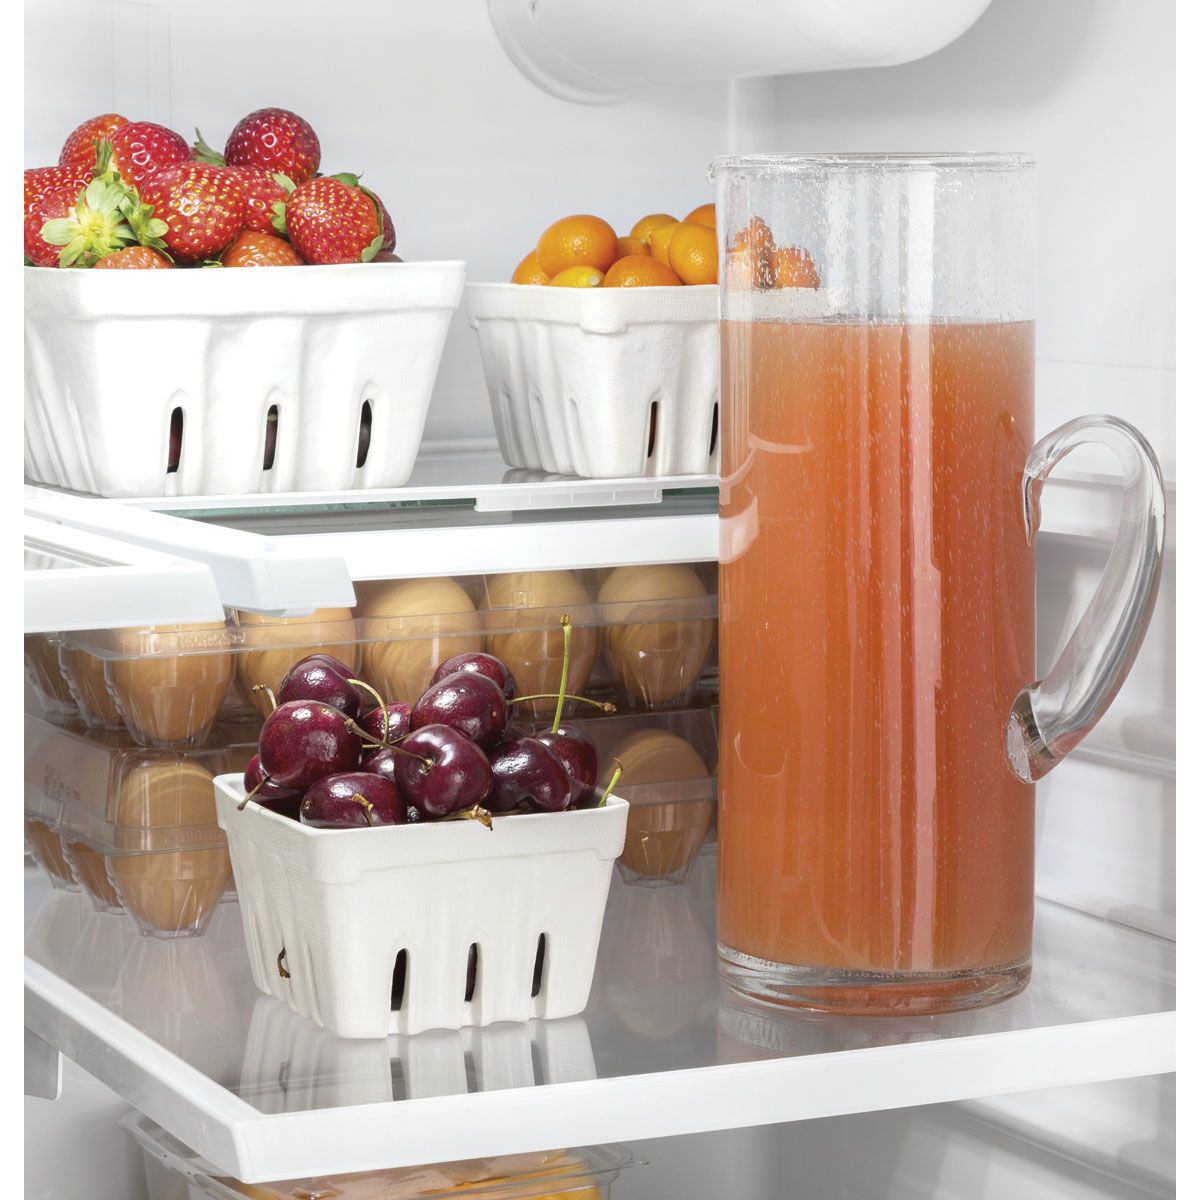 Picture of G.E. FRENCH DOOR REFRIGERATOR